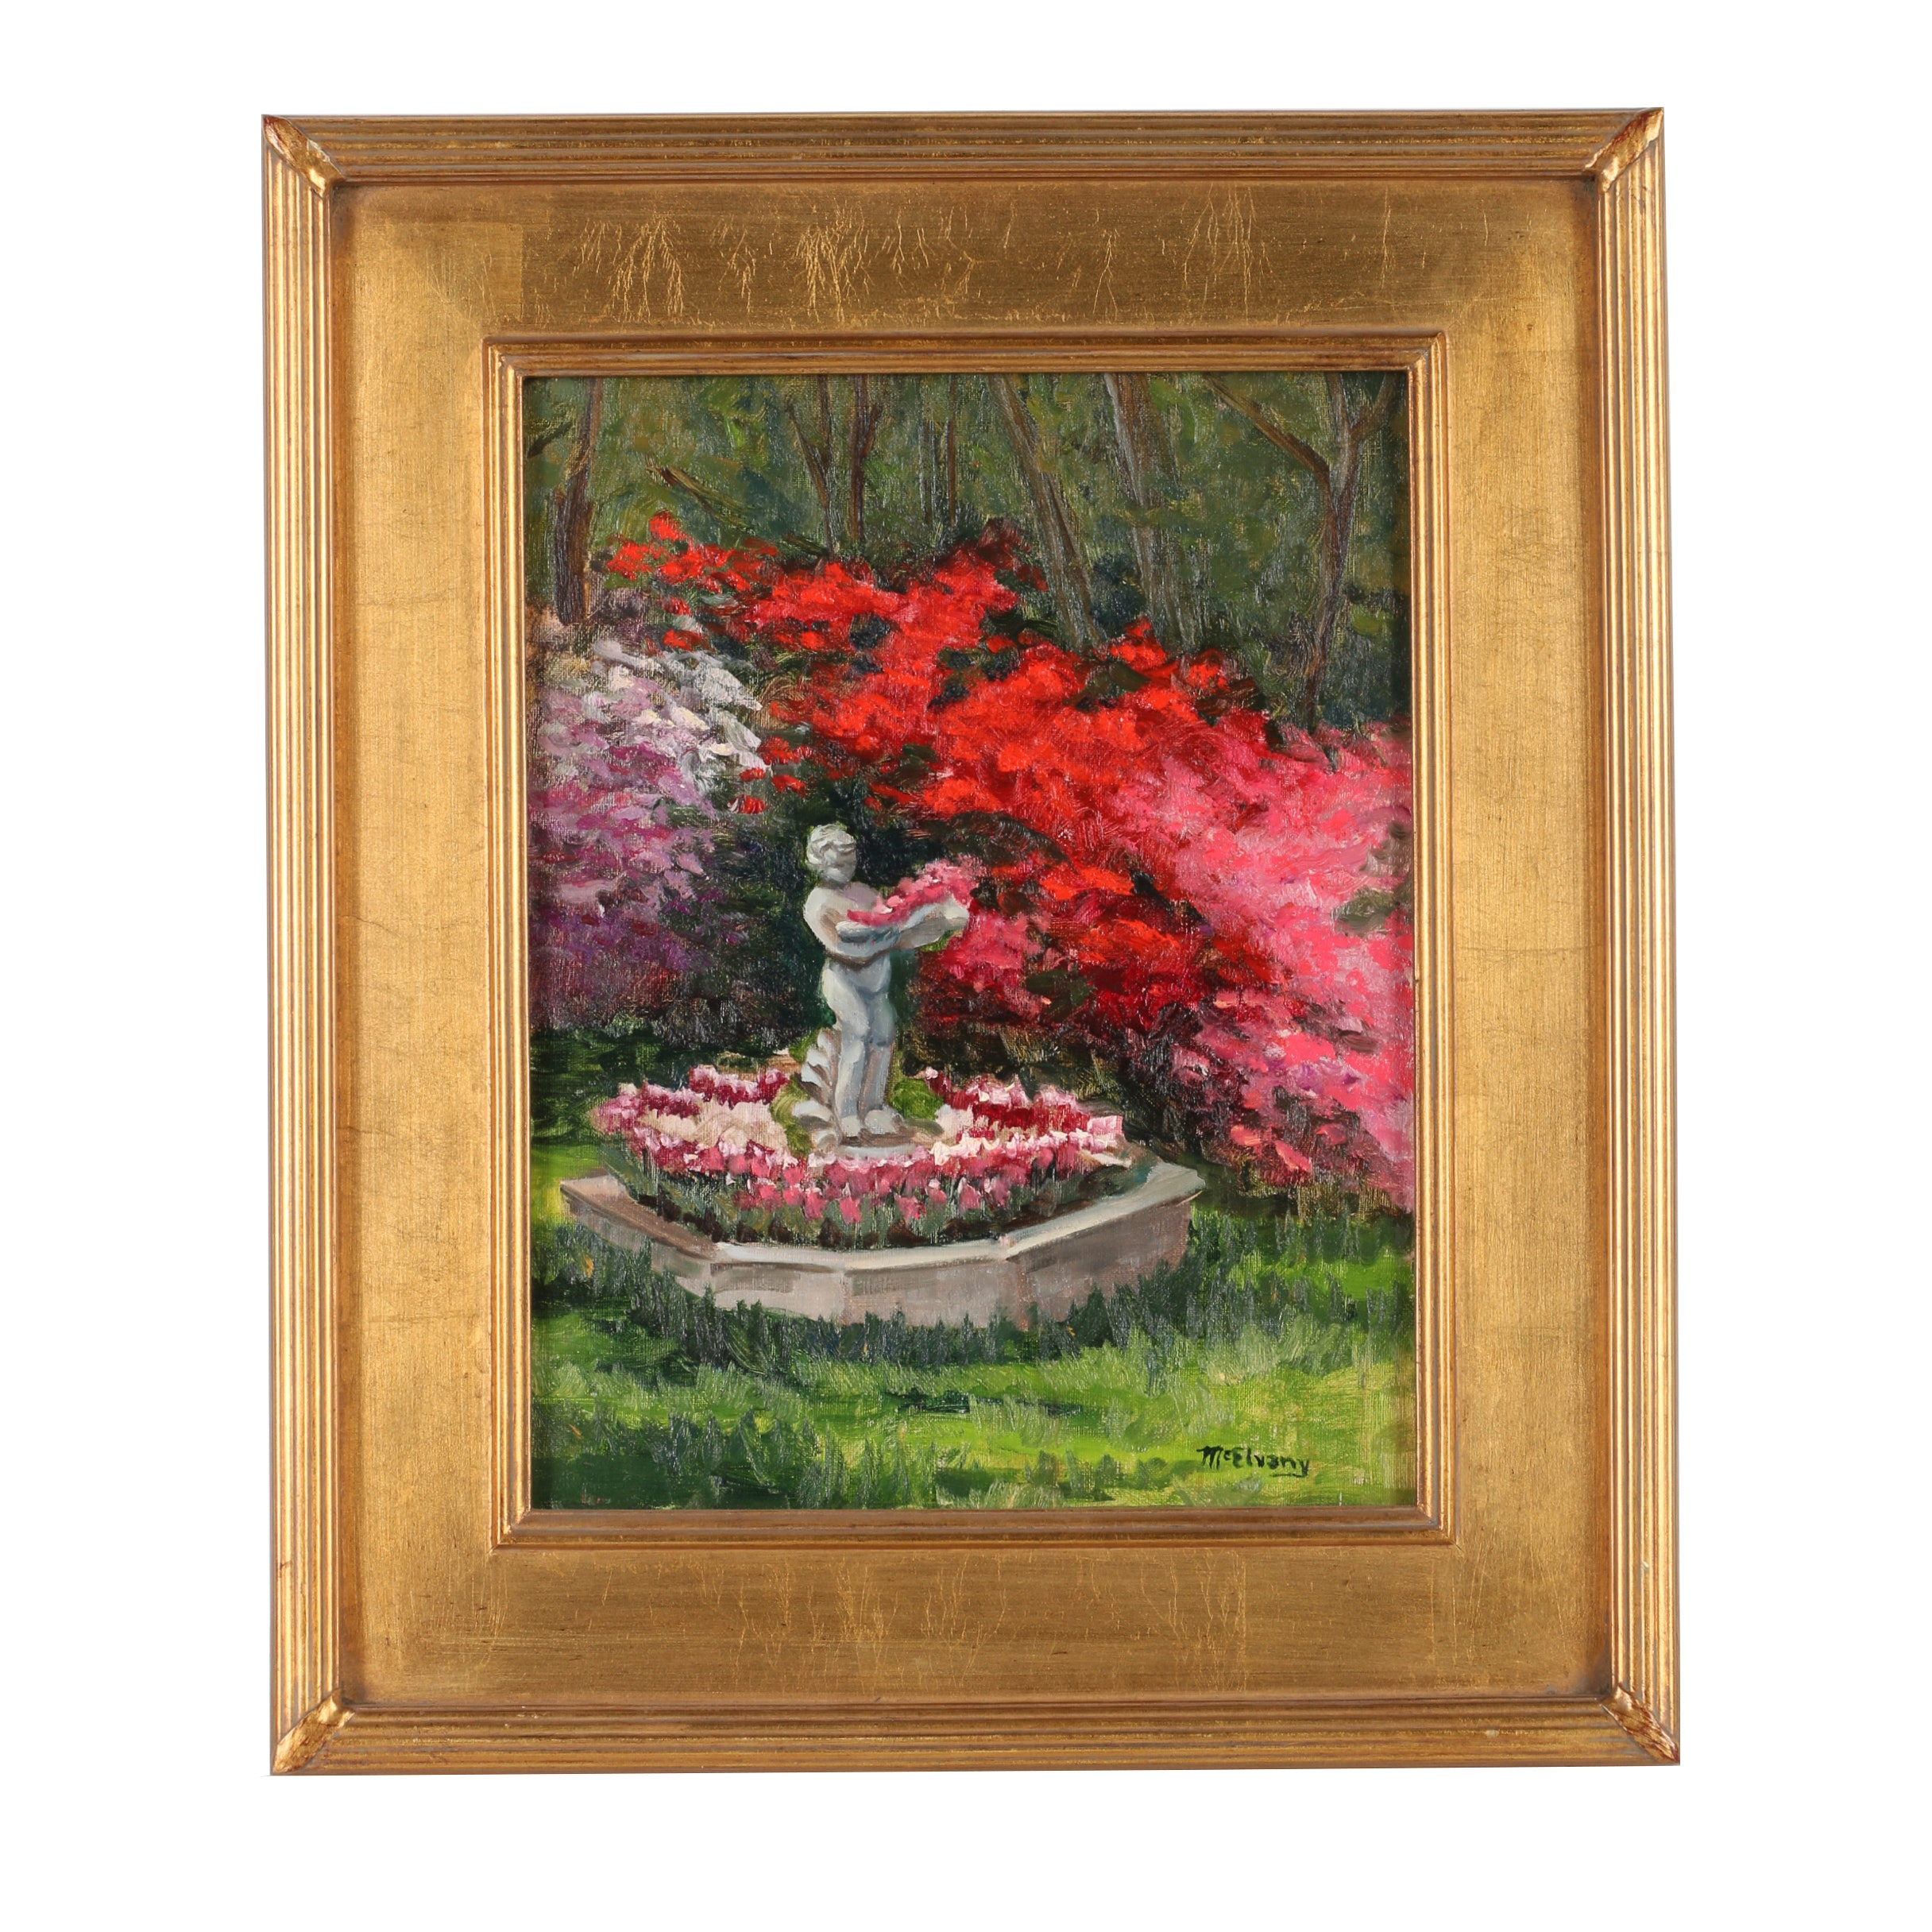 McElvany Oil Painting of a Garden Landscape